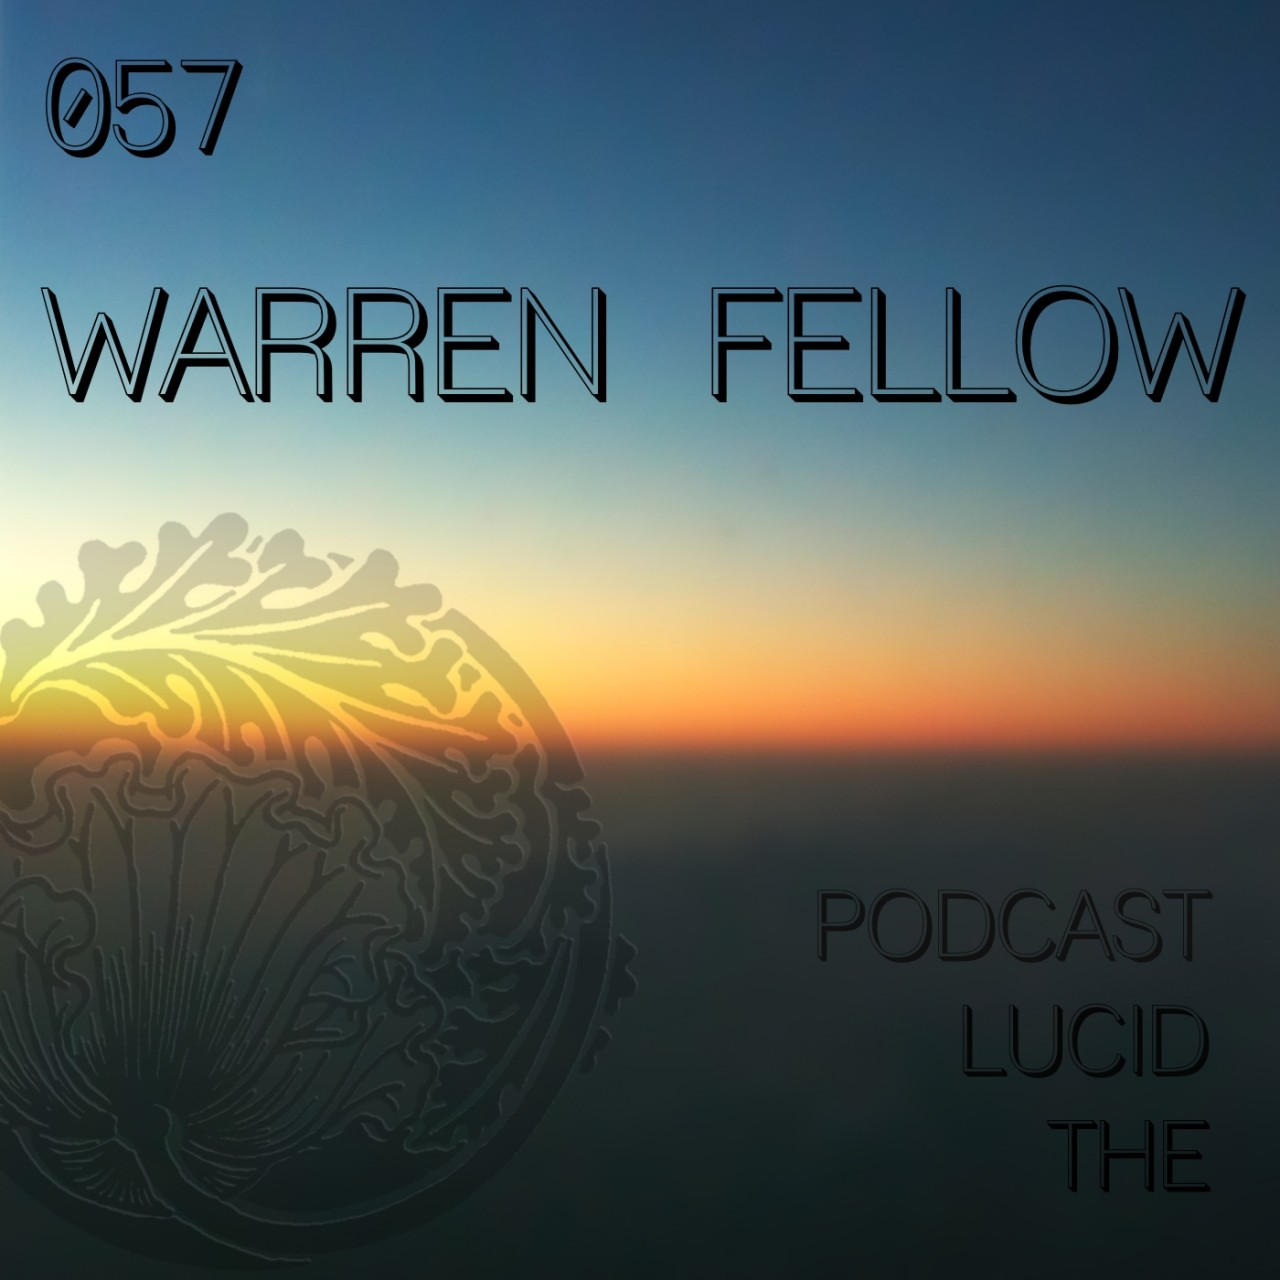 The Lucid Podcast 057 Warren Fellow